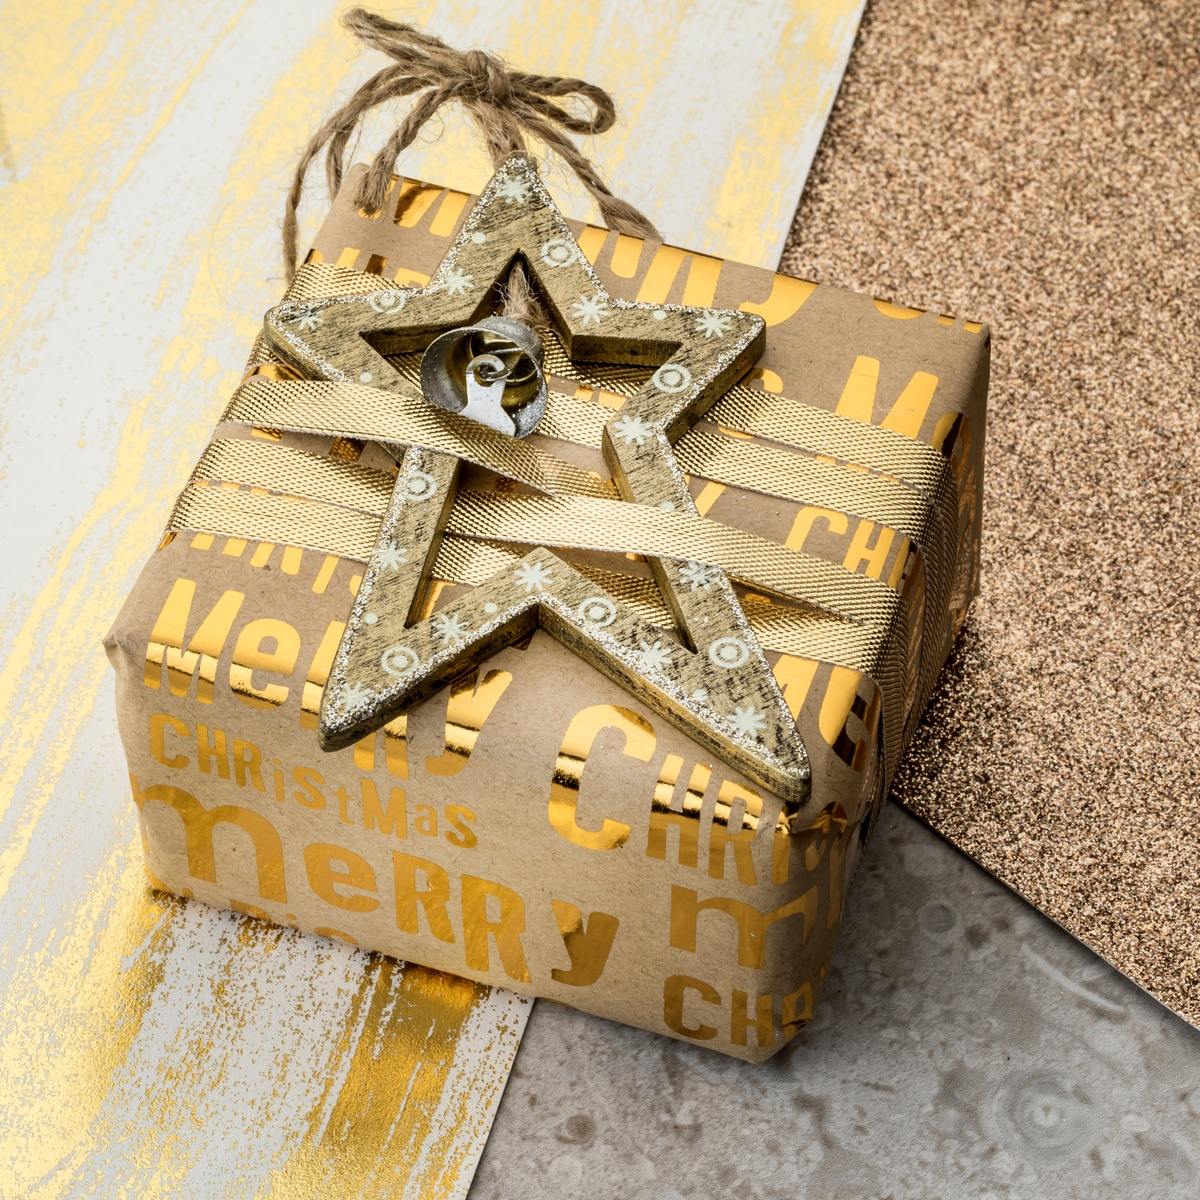 Beautifully and thoughtfully wrapped Christmas presents